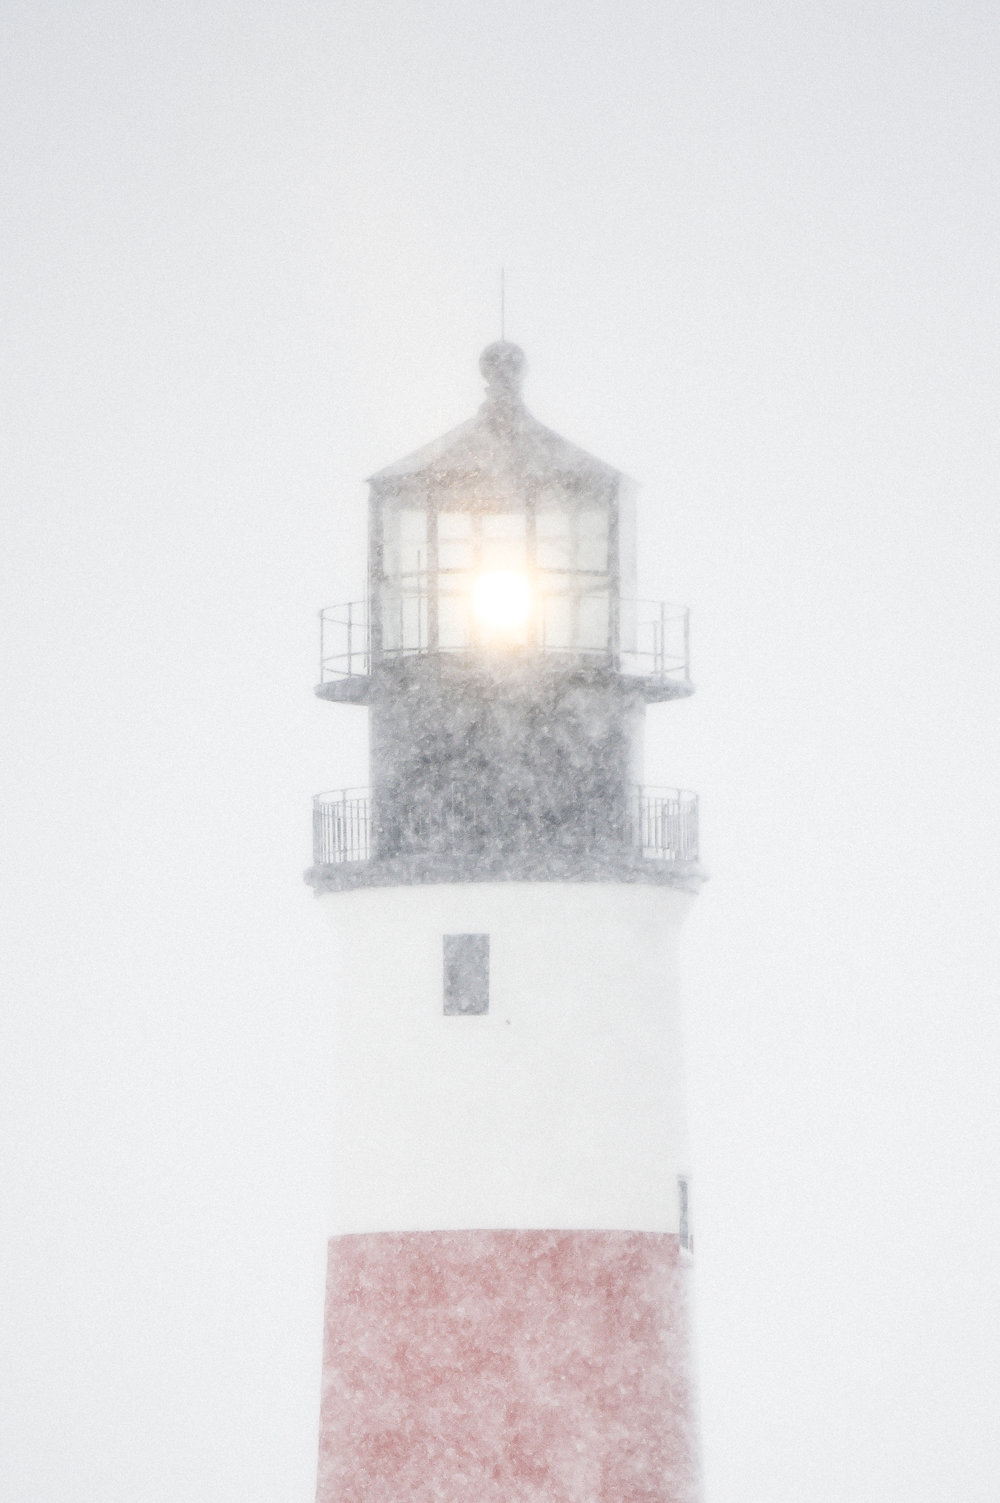 Nantucket Winter Photos (1 of 1)-11.jpg